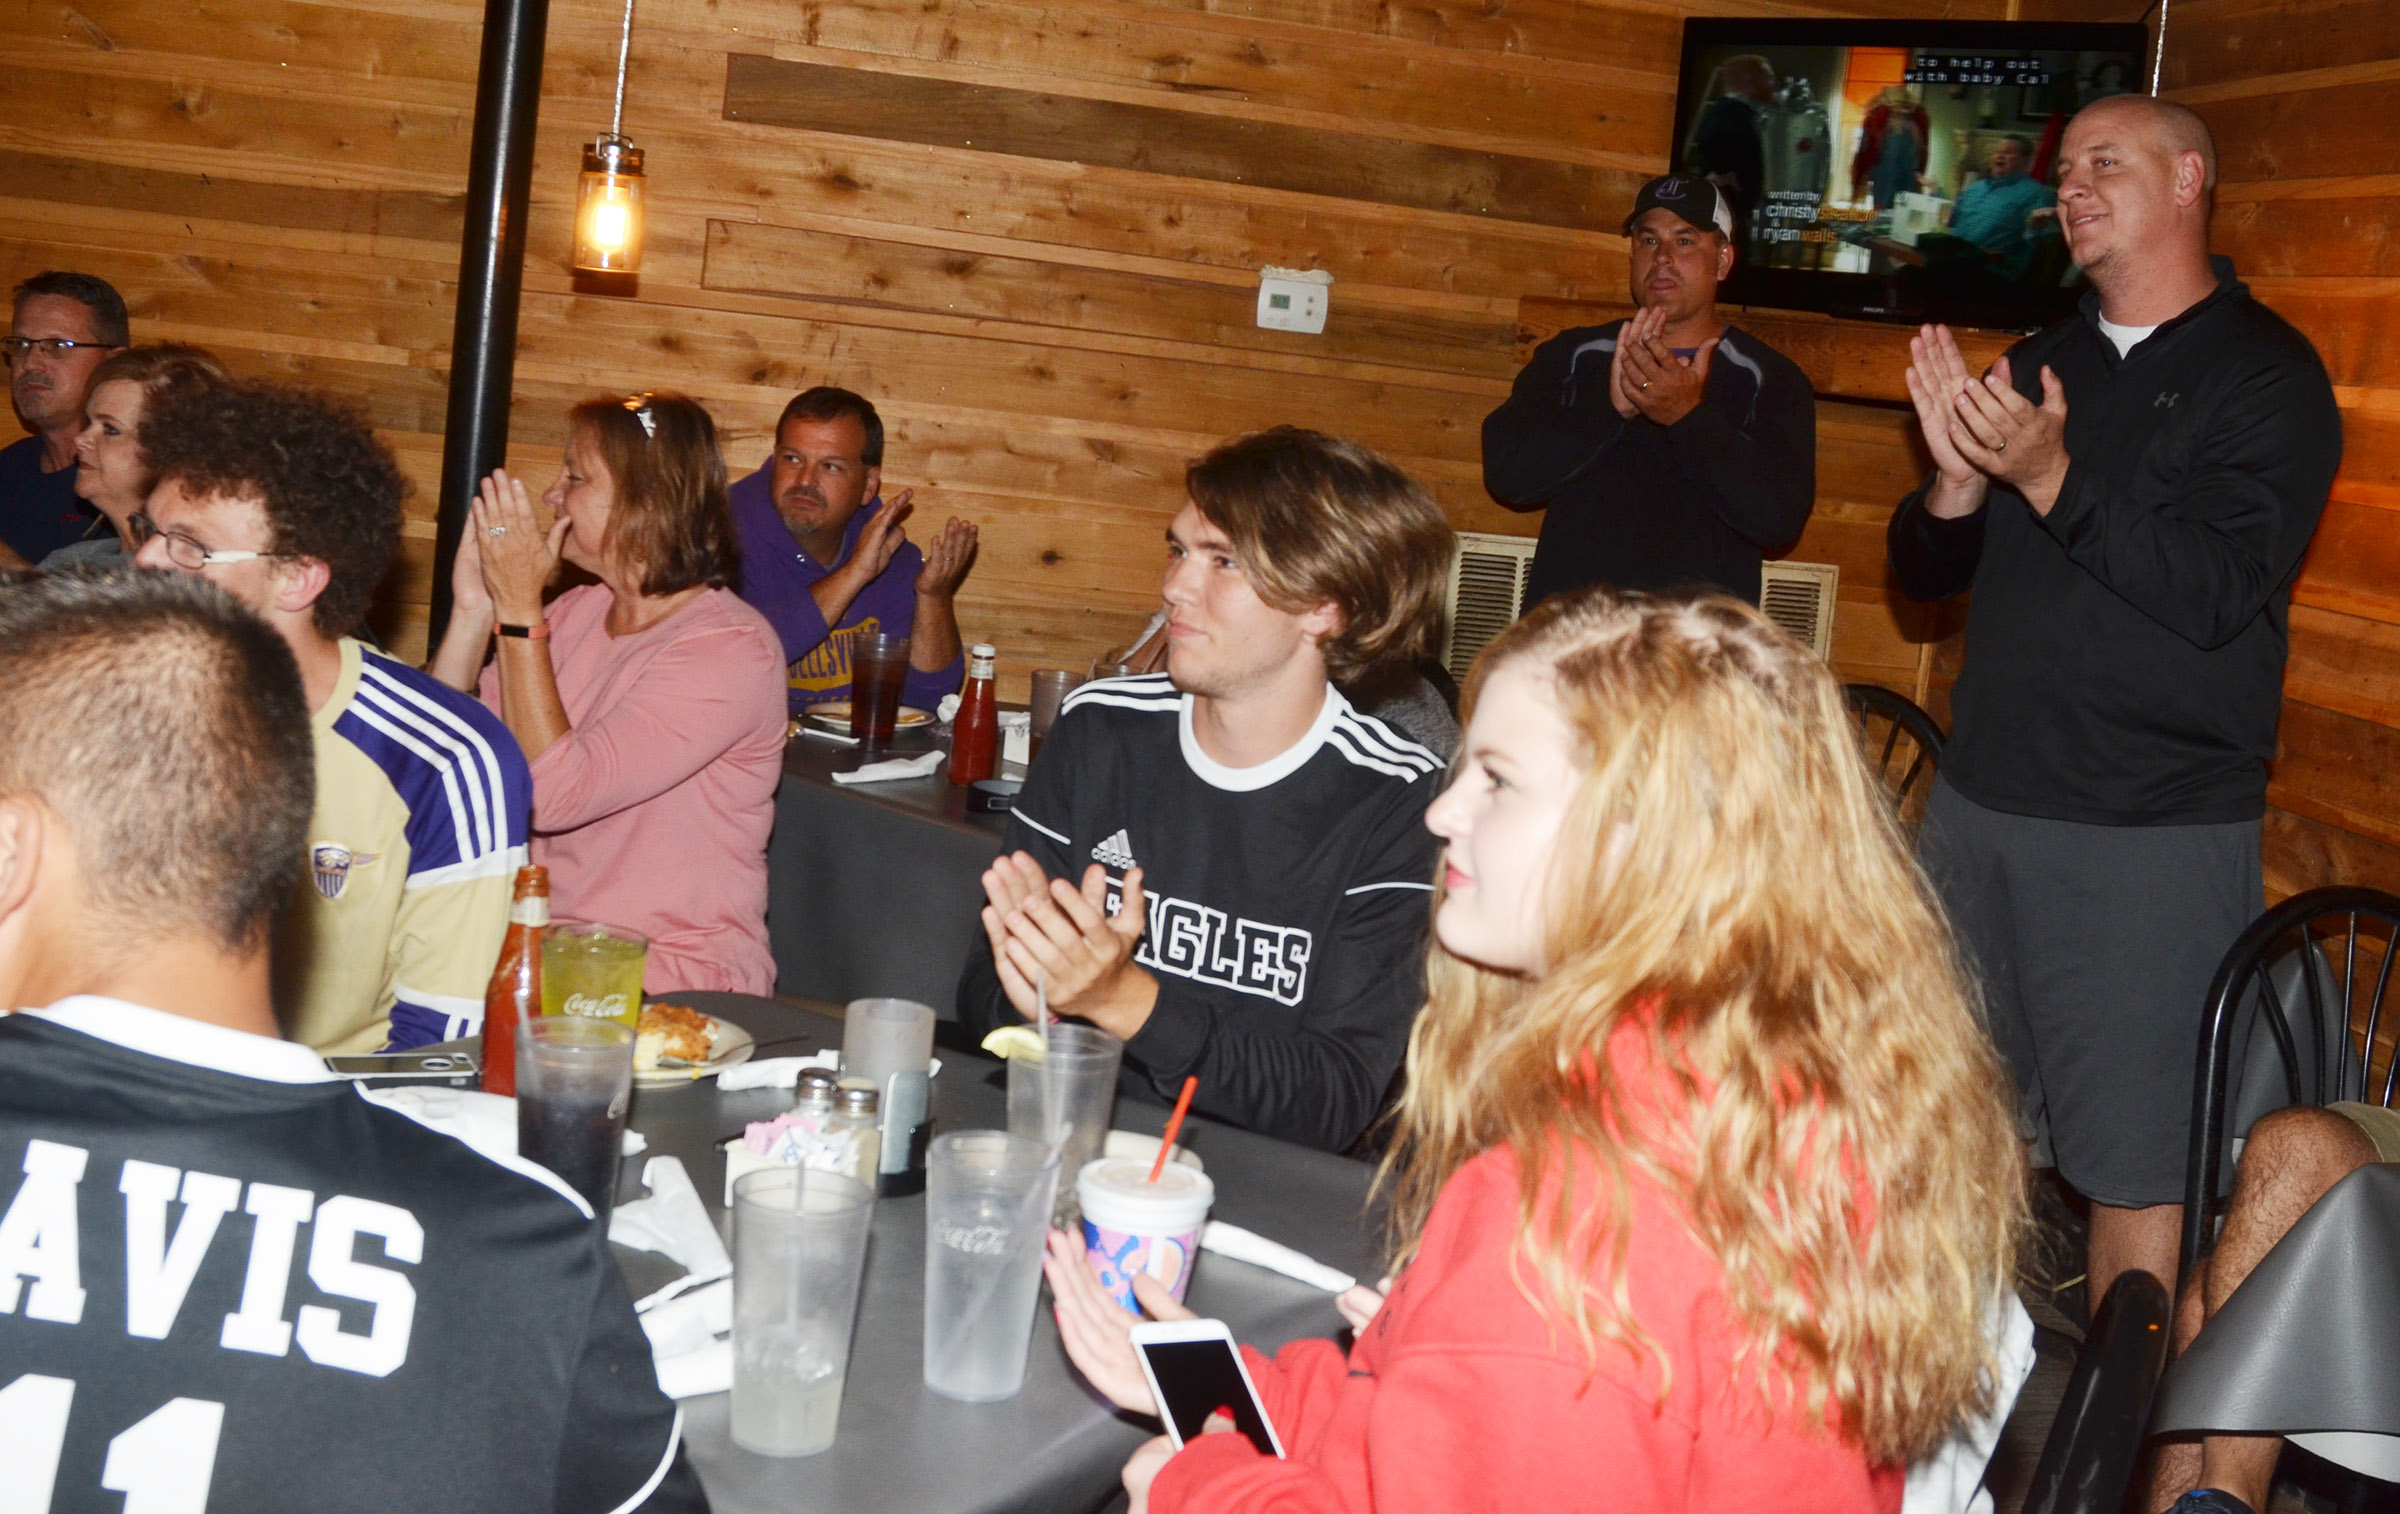 Campbellsville Independent Schools Superintendent Kirby Smith, in back, at left, and CHS Principal David Petett cheer as the team celebrates at Creek Side Restaurant.